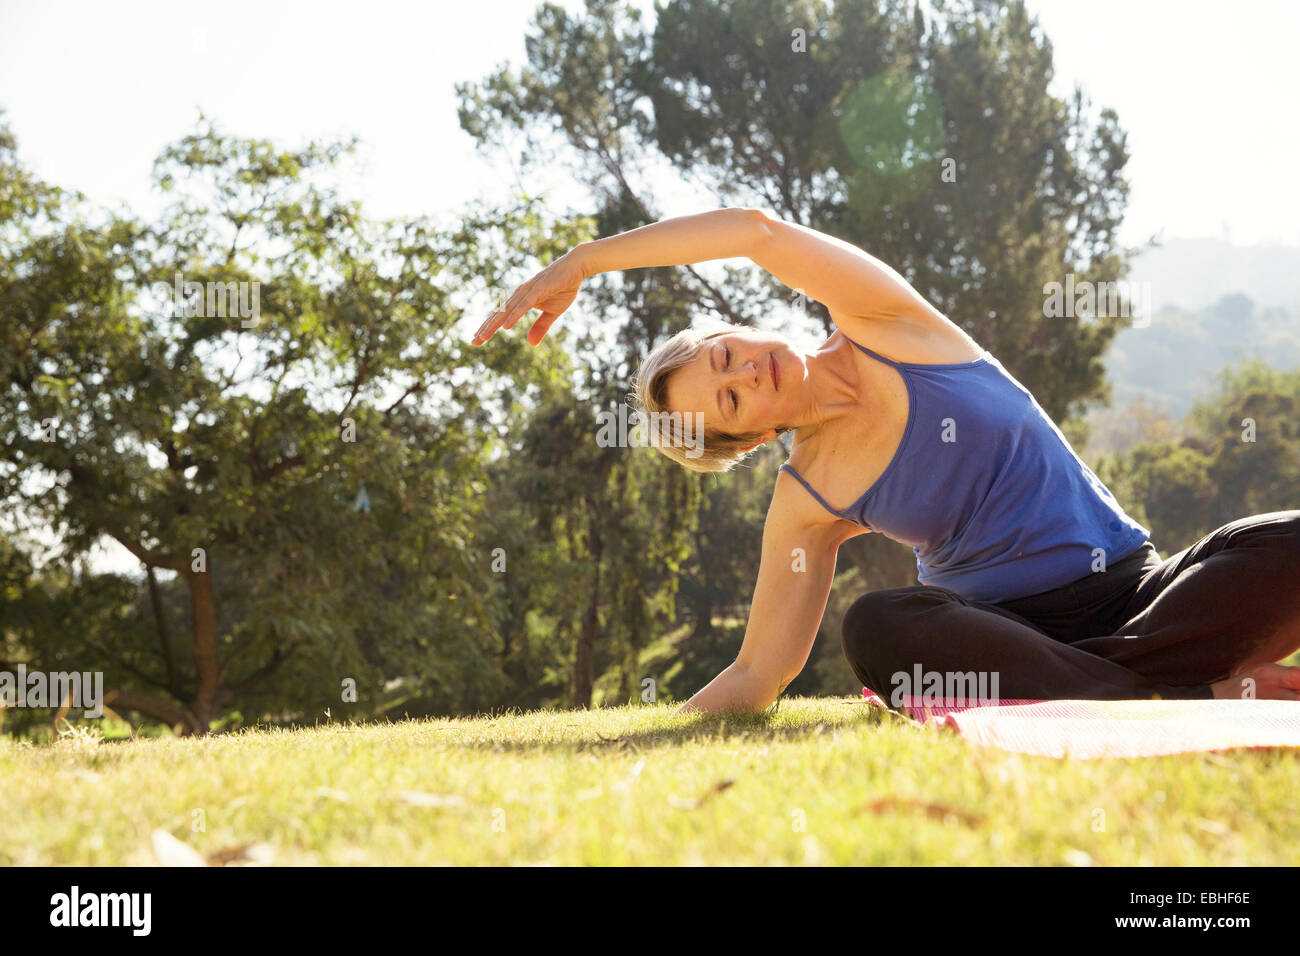 Mature woman practicing yoga in park - Stock Image